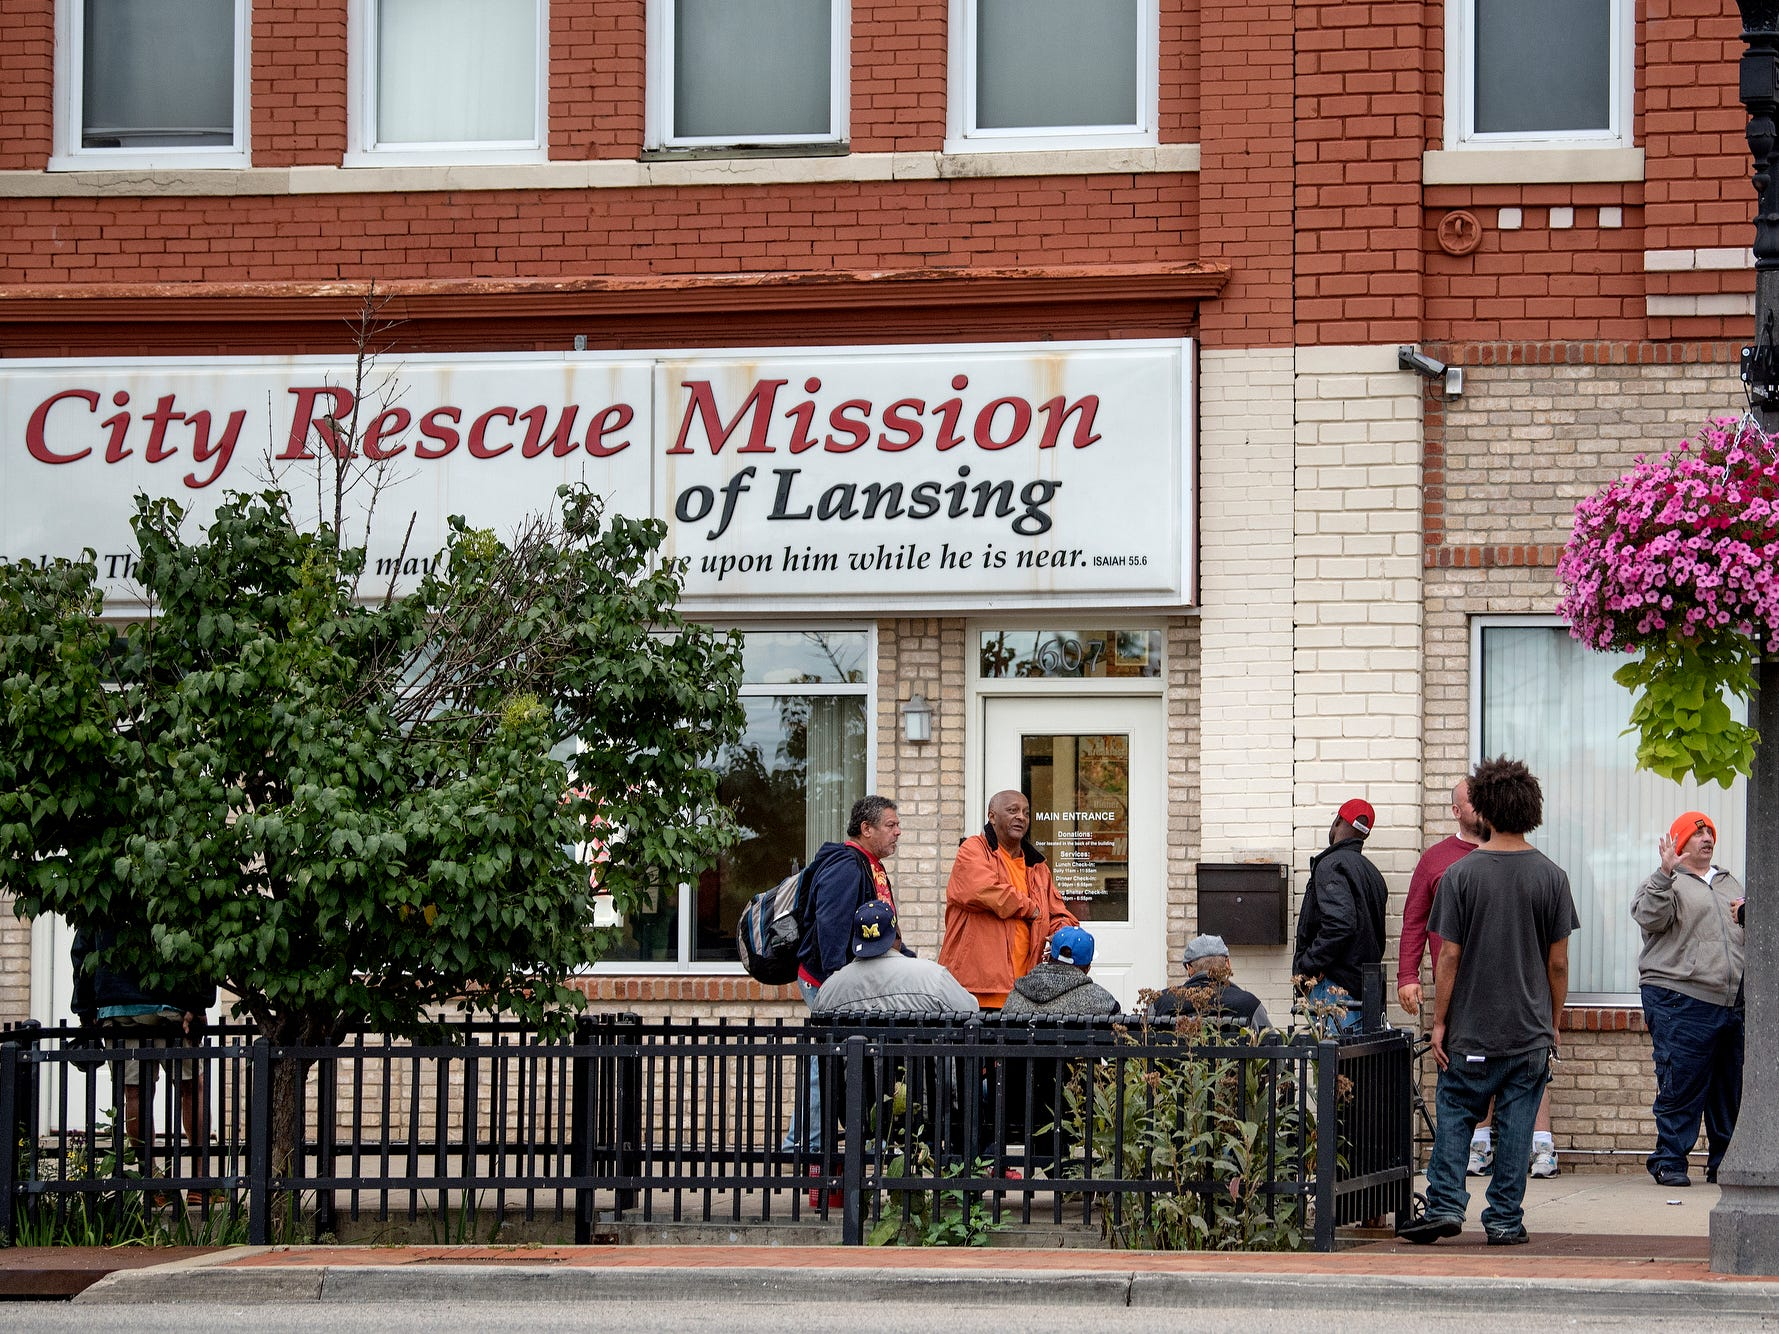 A line forms outside the City Rescue Mission before dinnertime on Monday, Sept. 10, 2018, in downtown Lansing. The mission is located across Michigan Avenue from the site where the Gillespie Group is planning to build a grocery store and hotel.